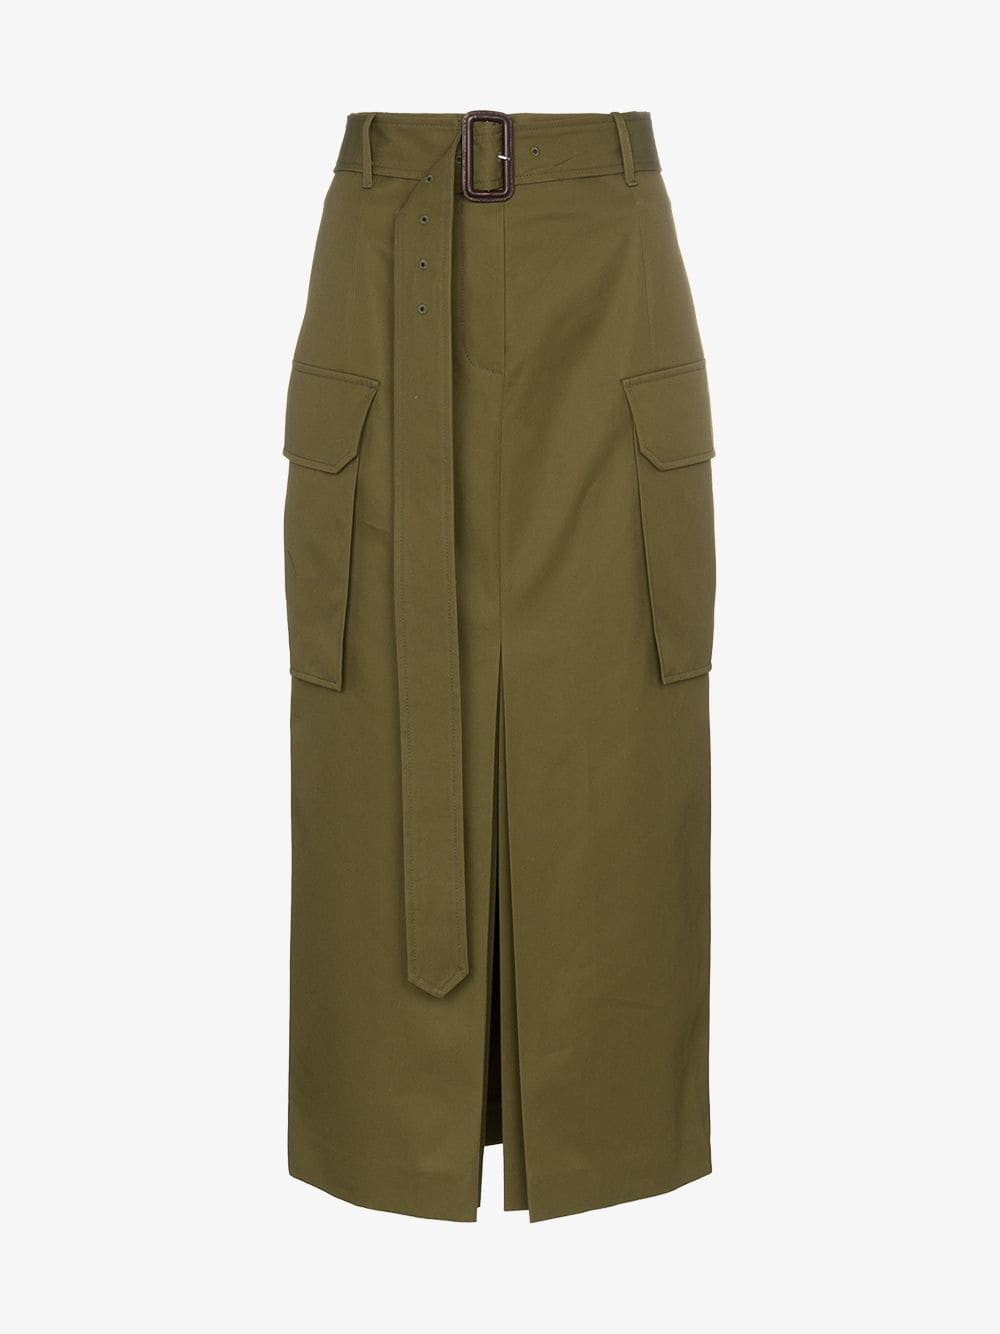 Juun.J Belted combat style high-waisted skirt in khaki